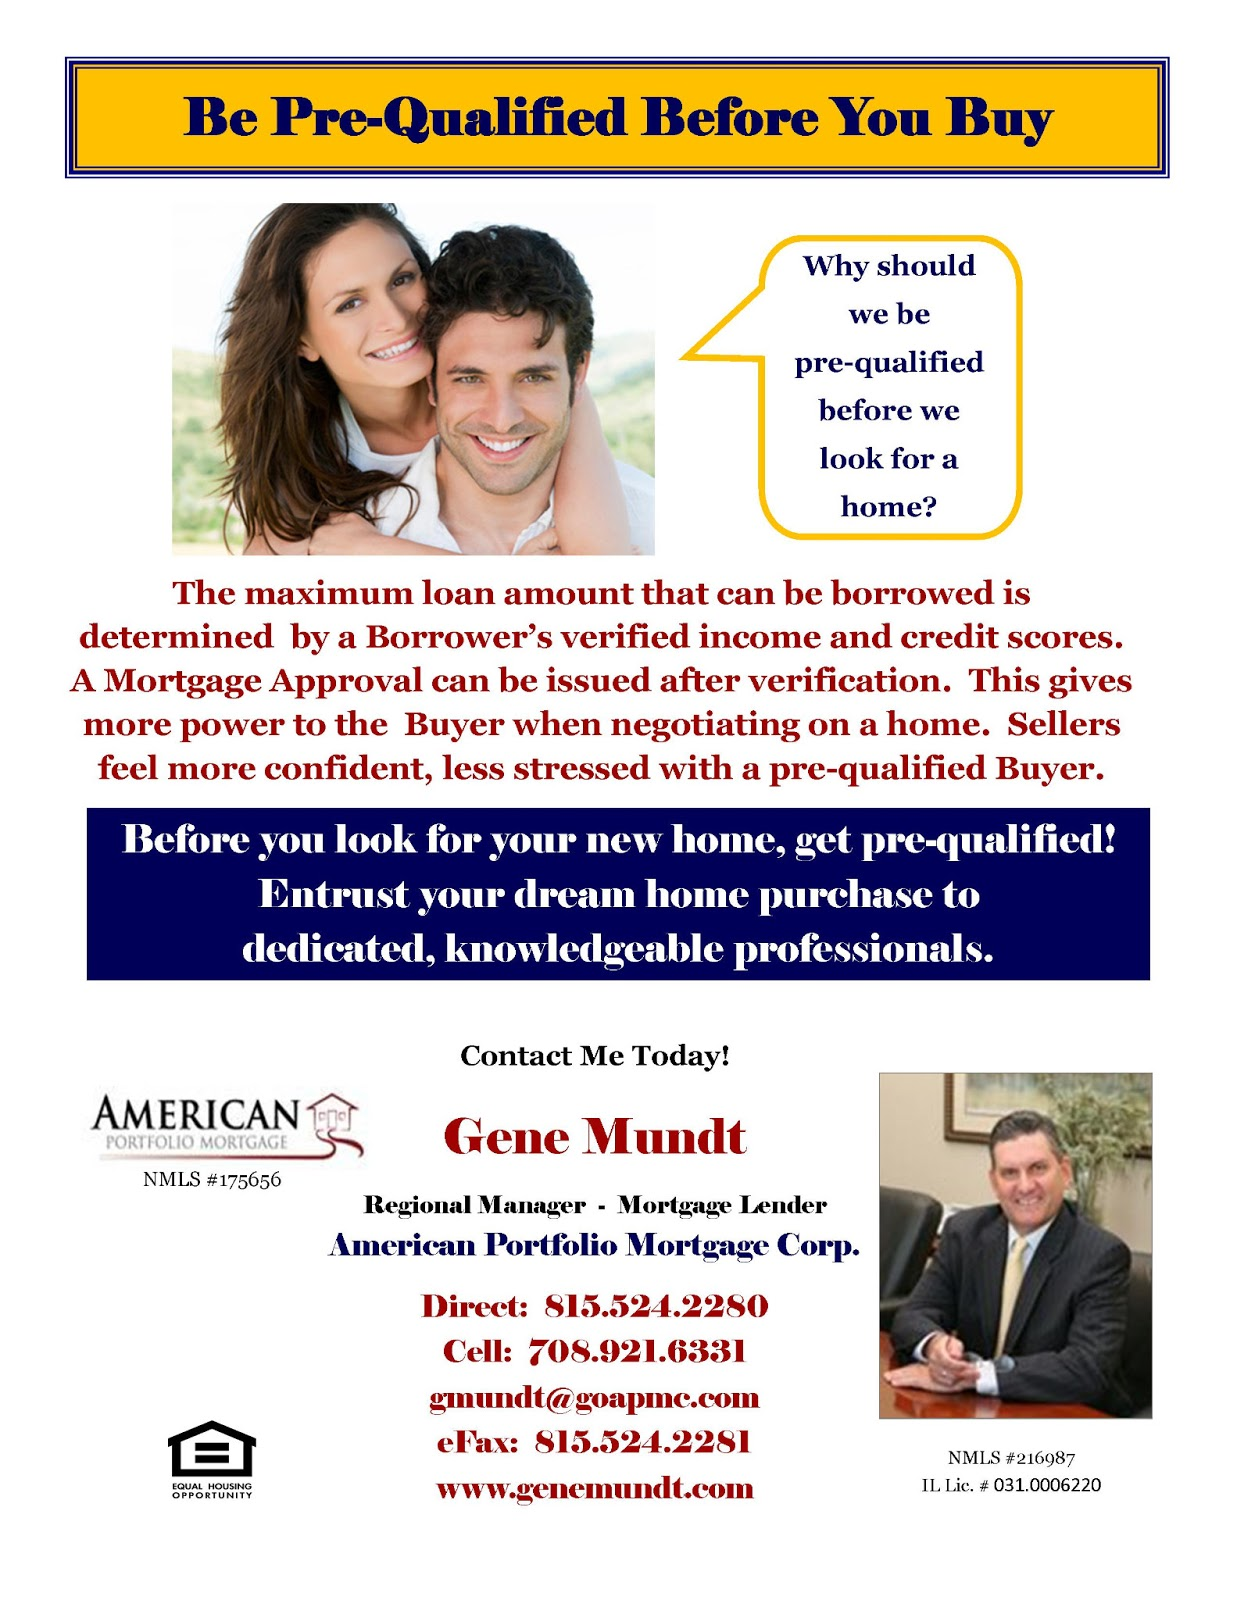 why home buying transactions must begin home buyers getting link to a mortgage consultation gene mundt mortgage lender